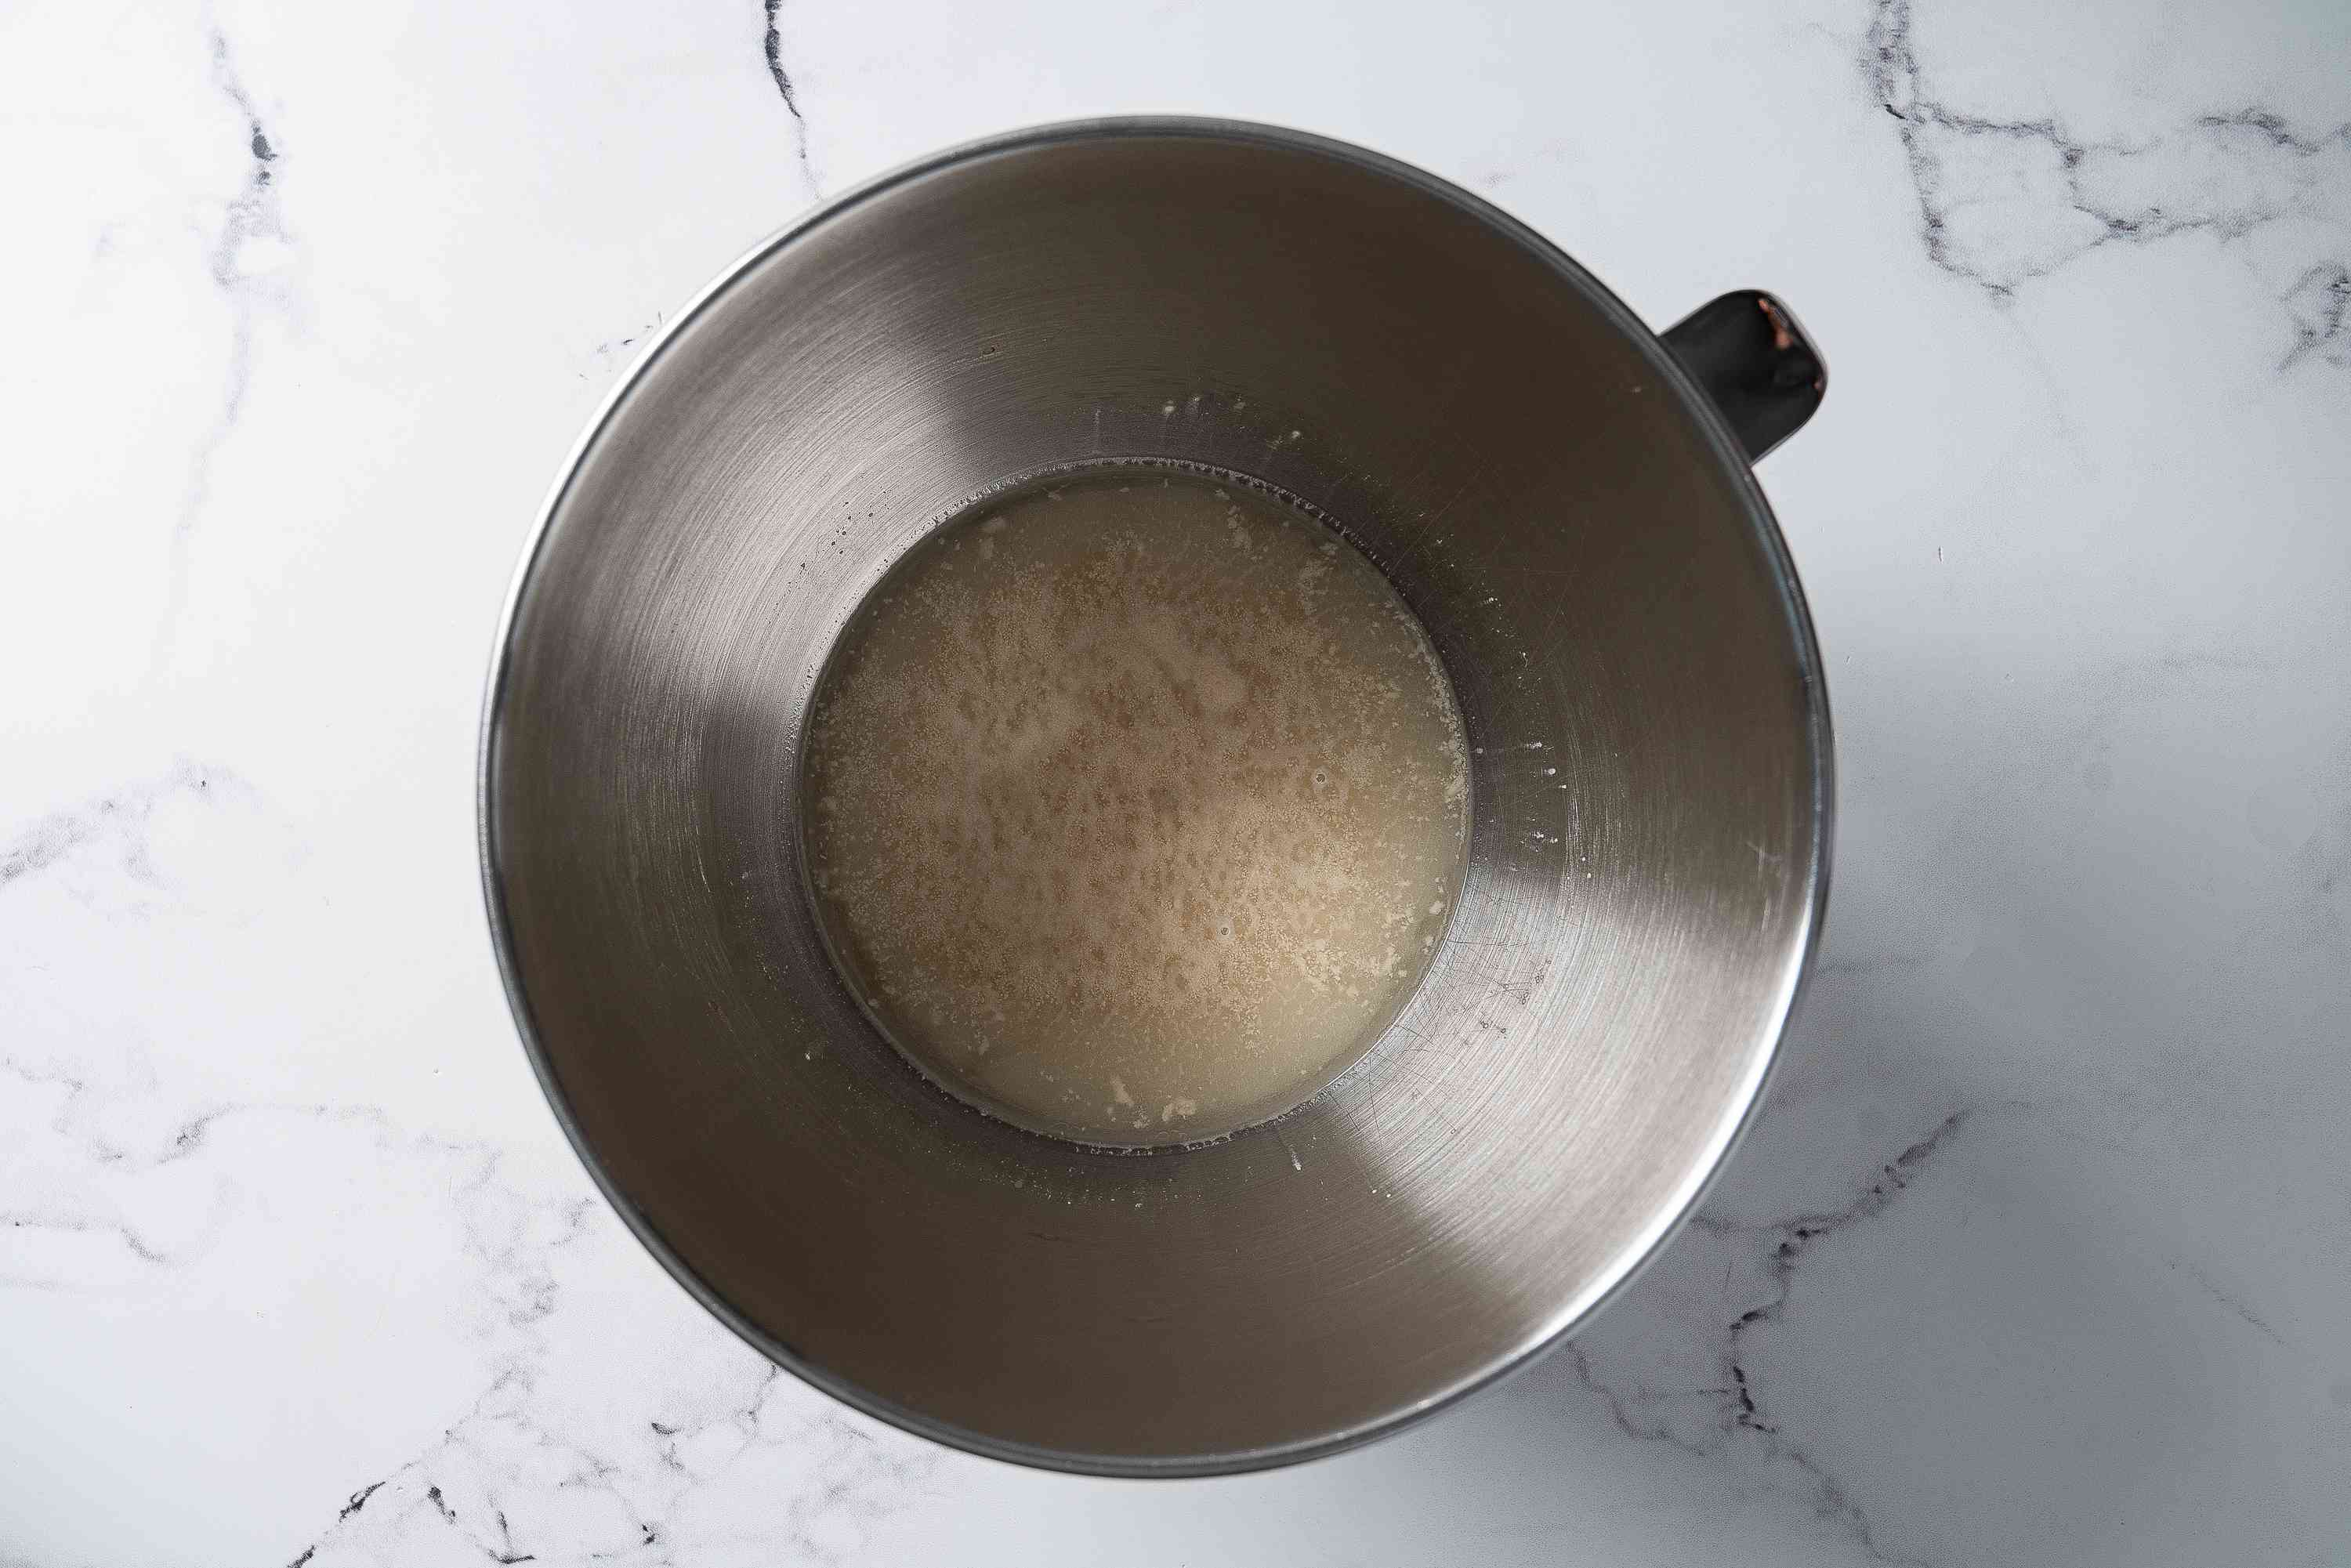 combine the warm water, yeast, and sugar